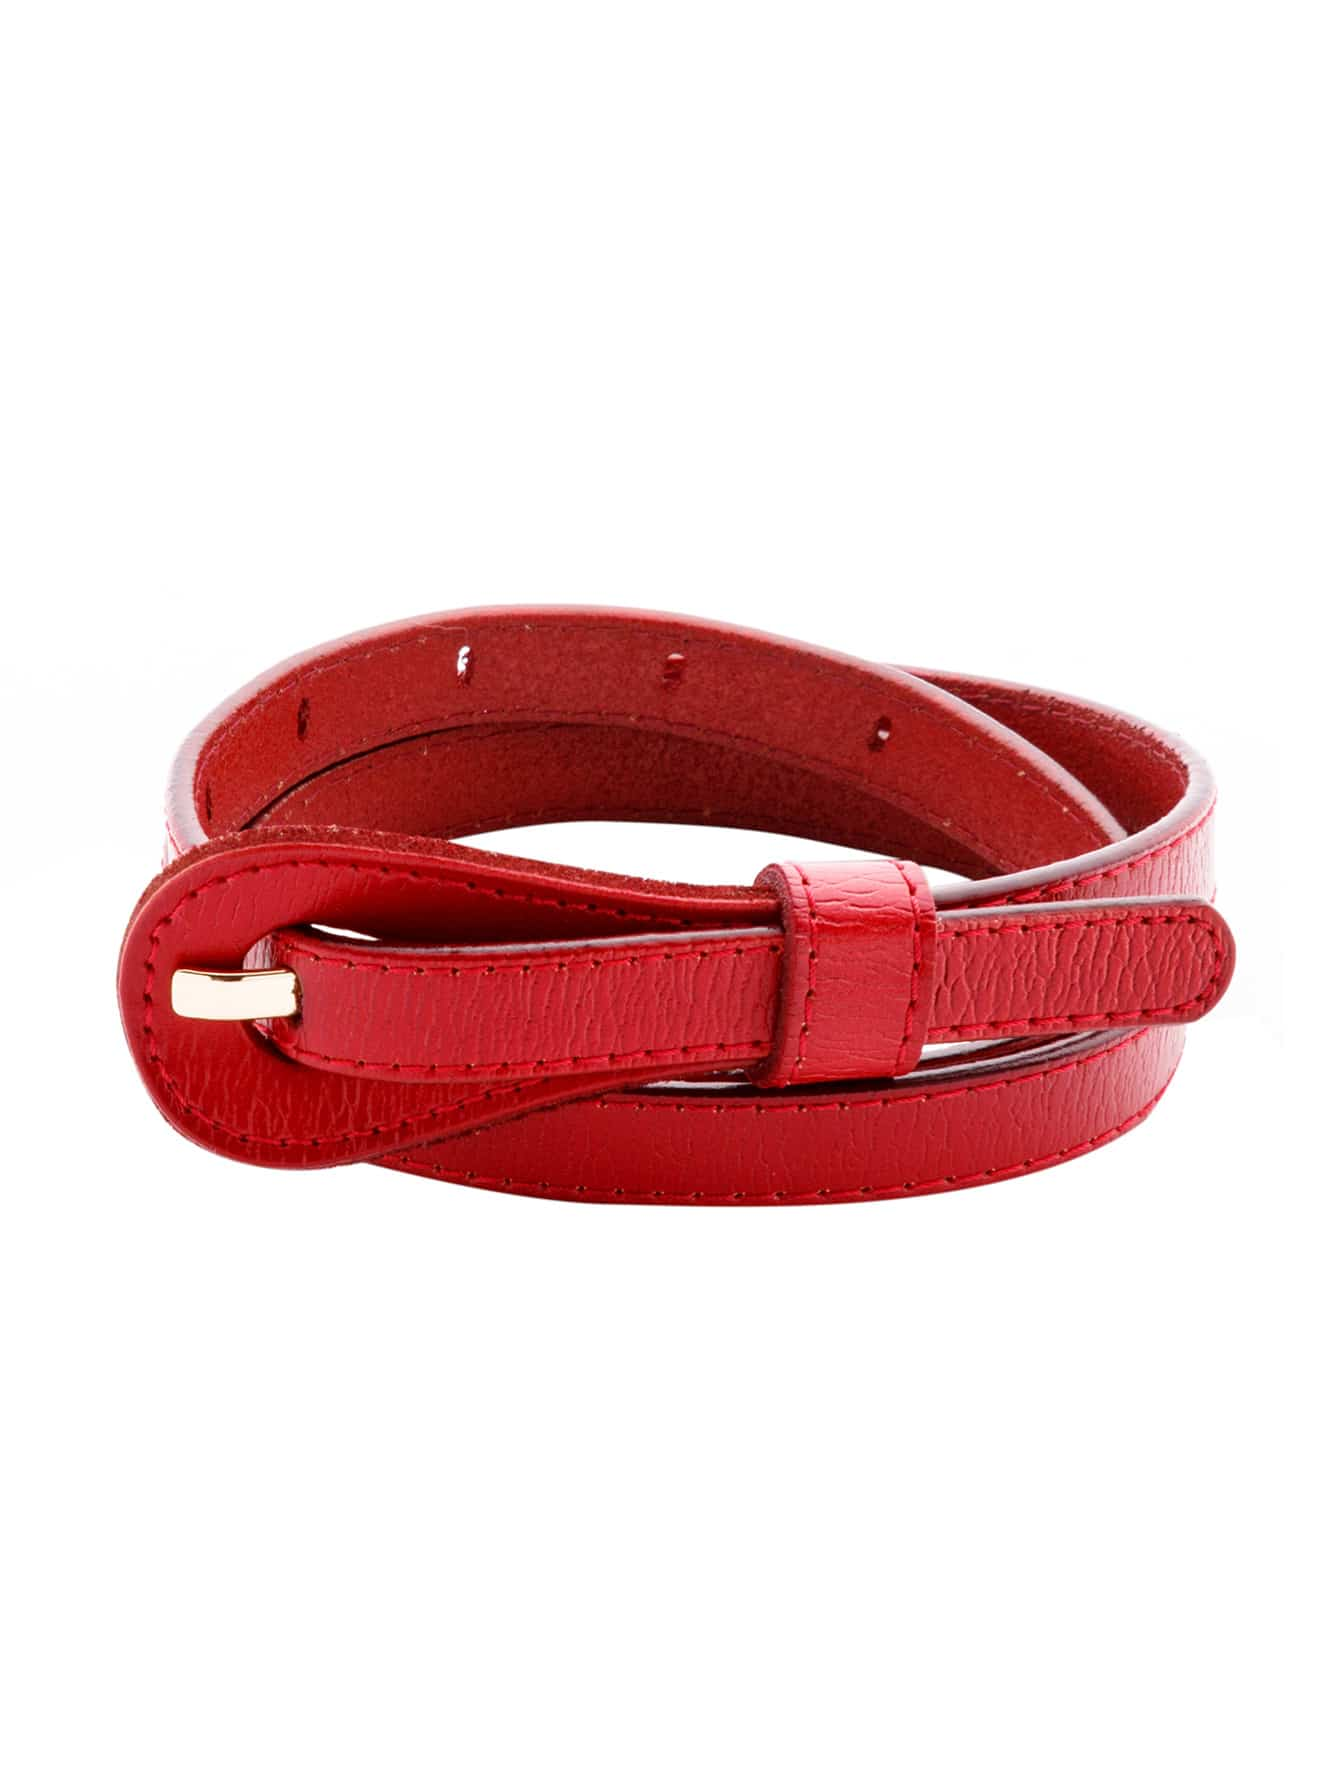 Red Simple Skinny BeltRed Simple Skinny Belt<br><br>color: Red<br>size: None